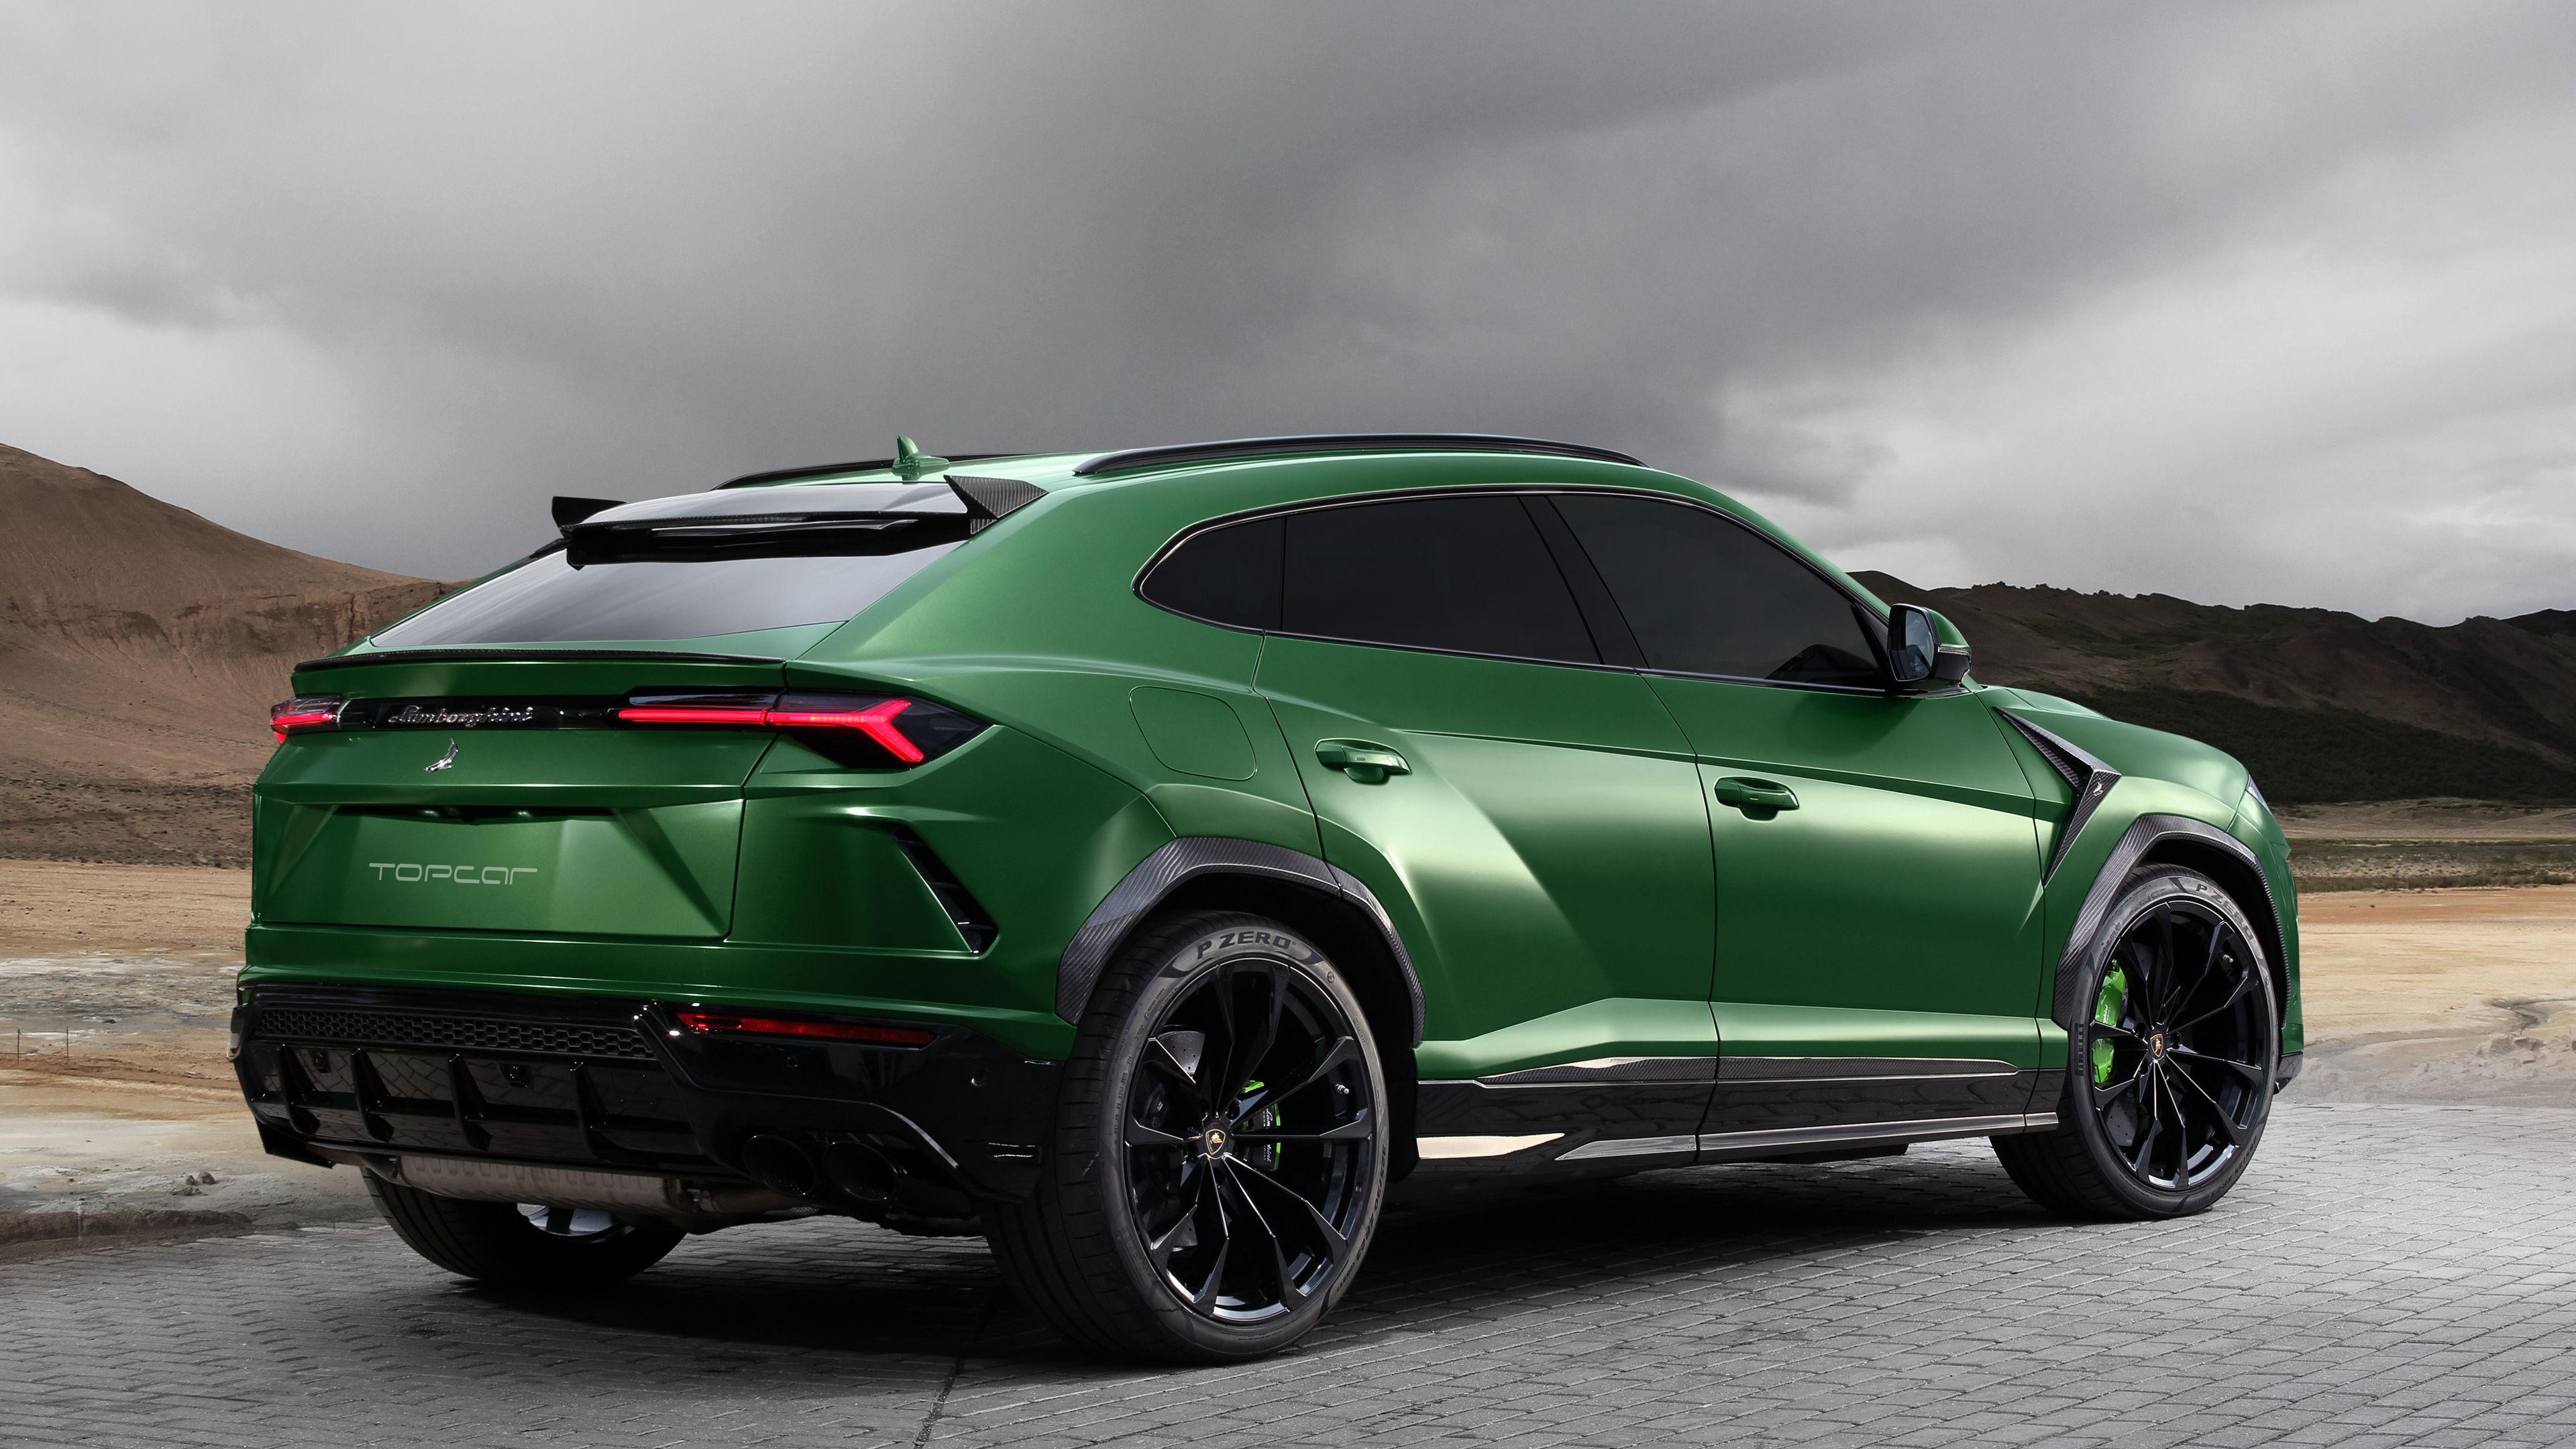 Wallpaper 4k Topcar Lamborghini Urus 2018 Rear 2018 Cars